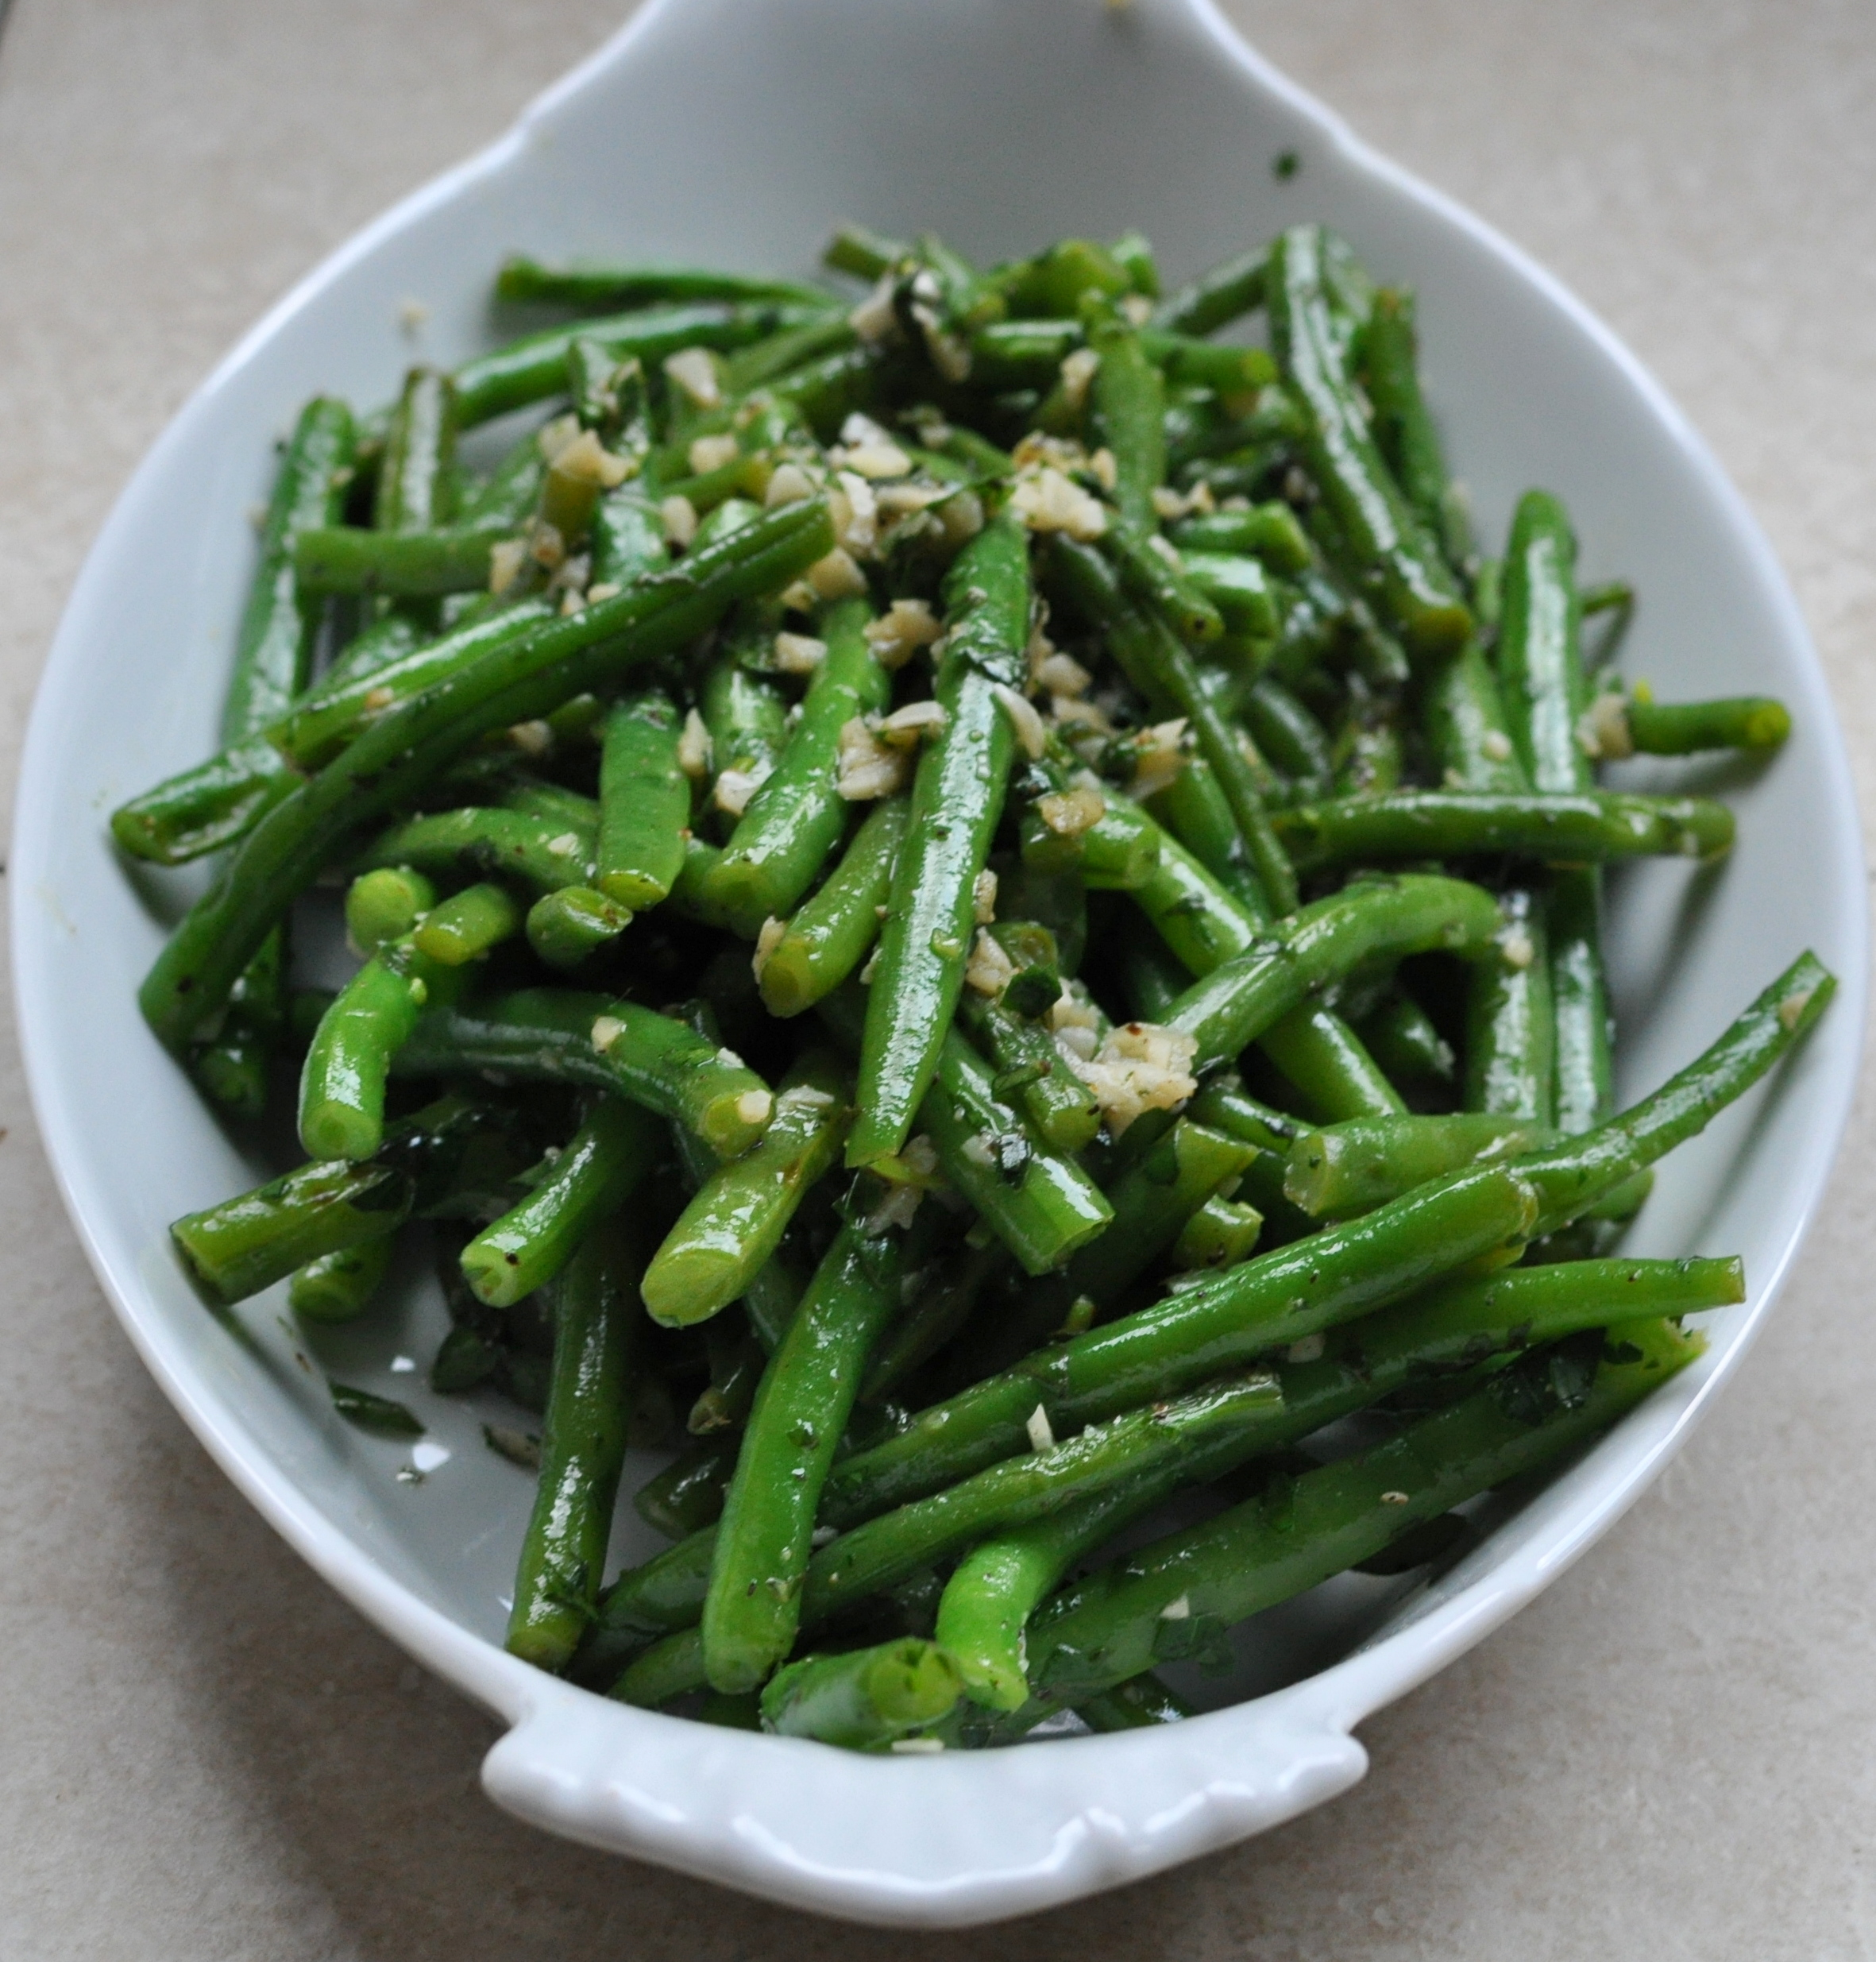 Saut 169 Ed Green Beans With Garlic And Herbs Cooking Planit